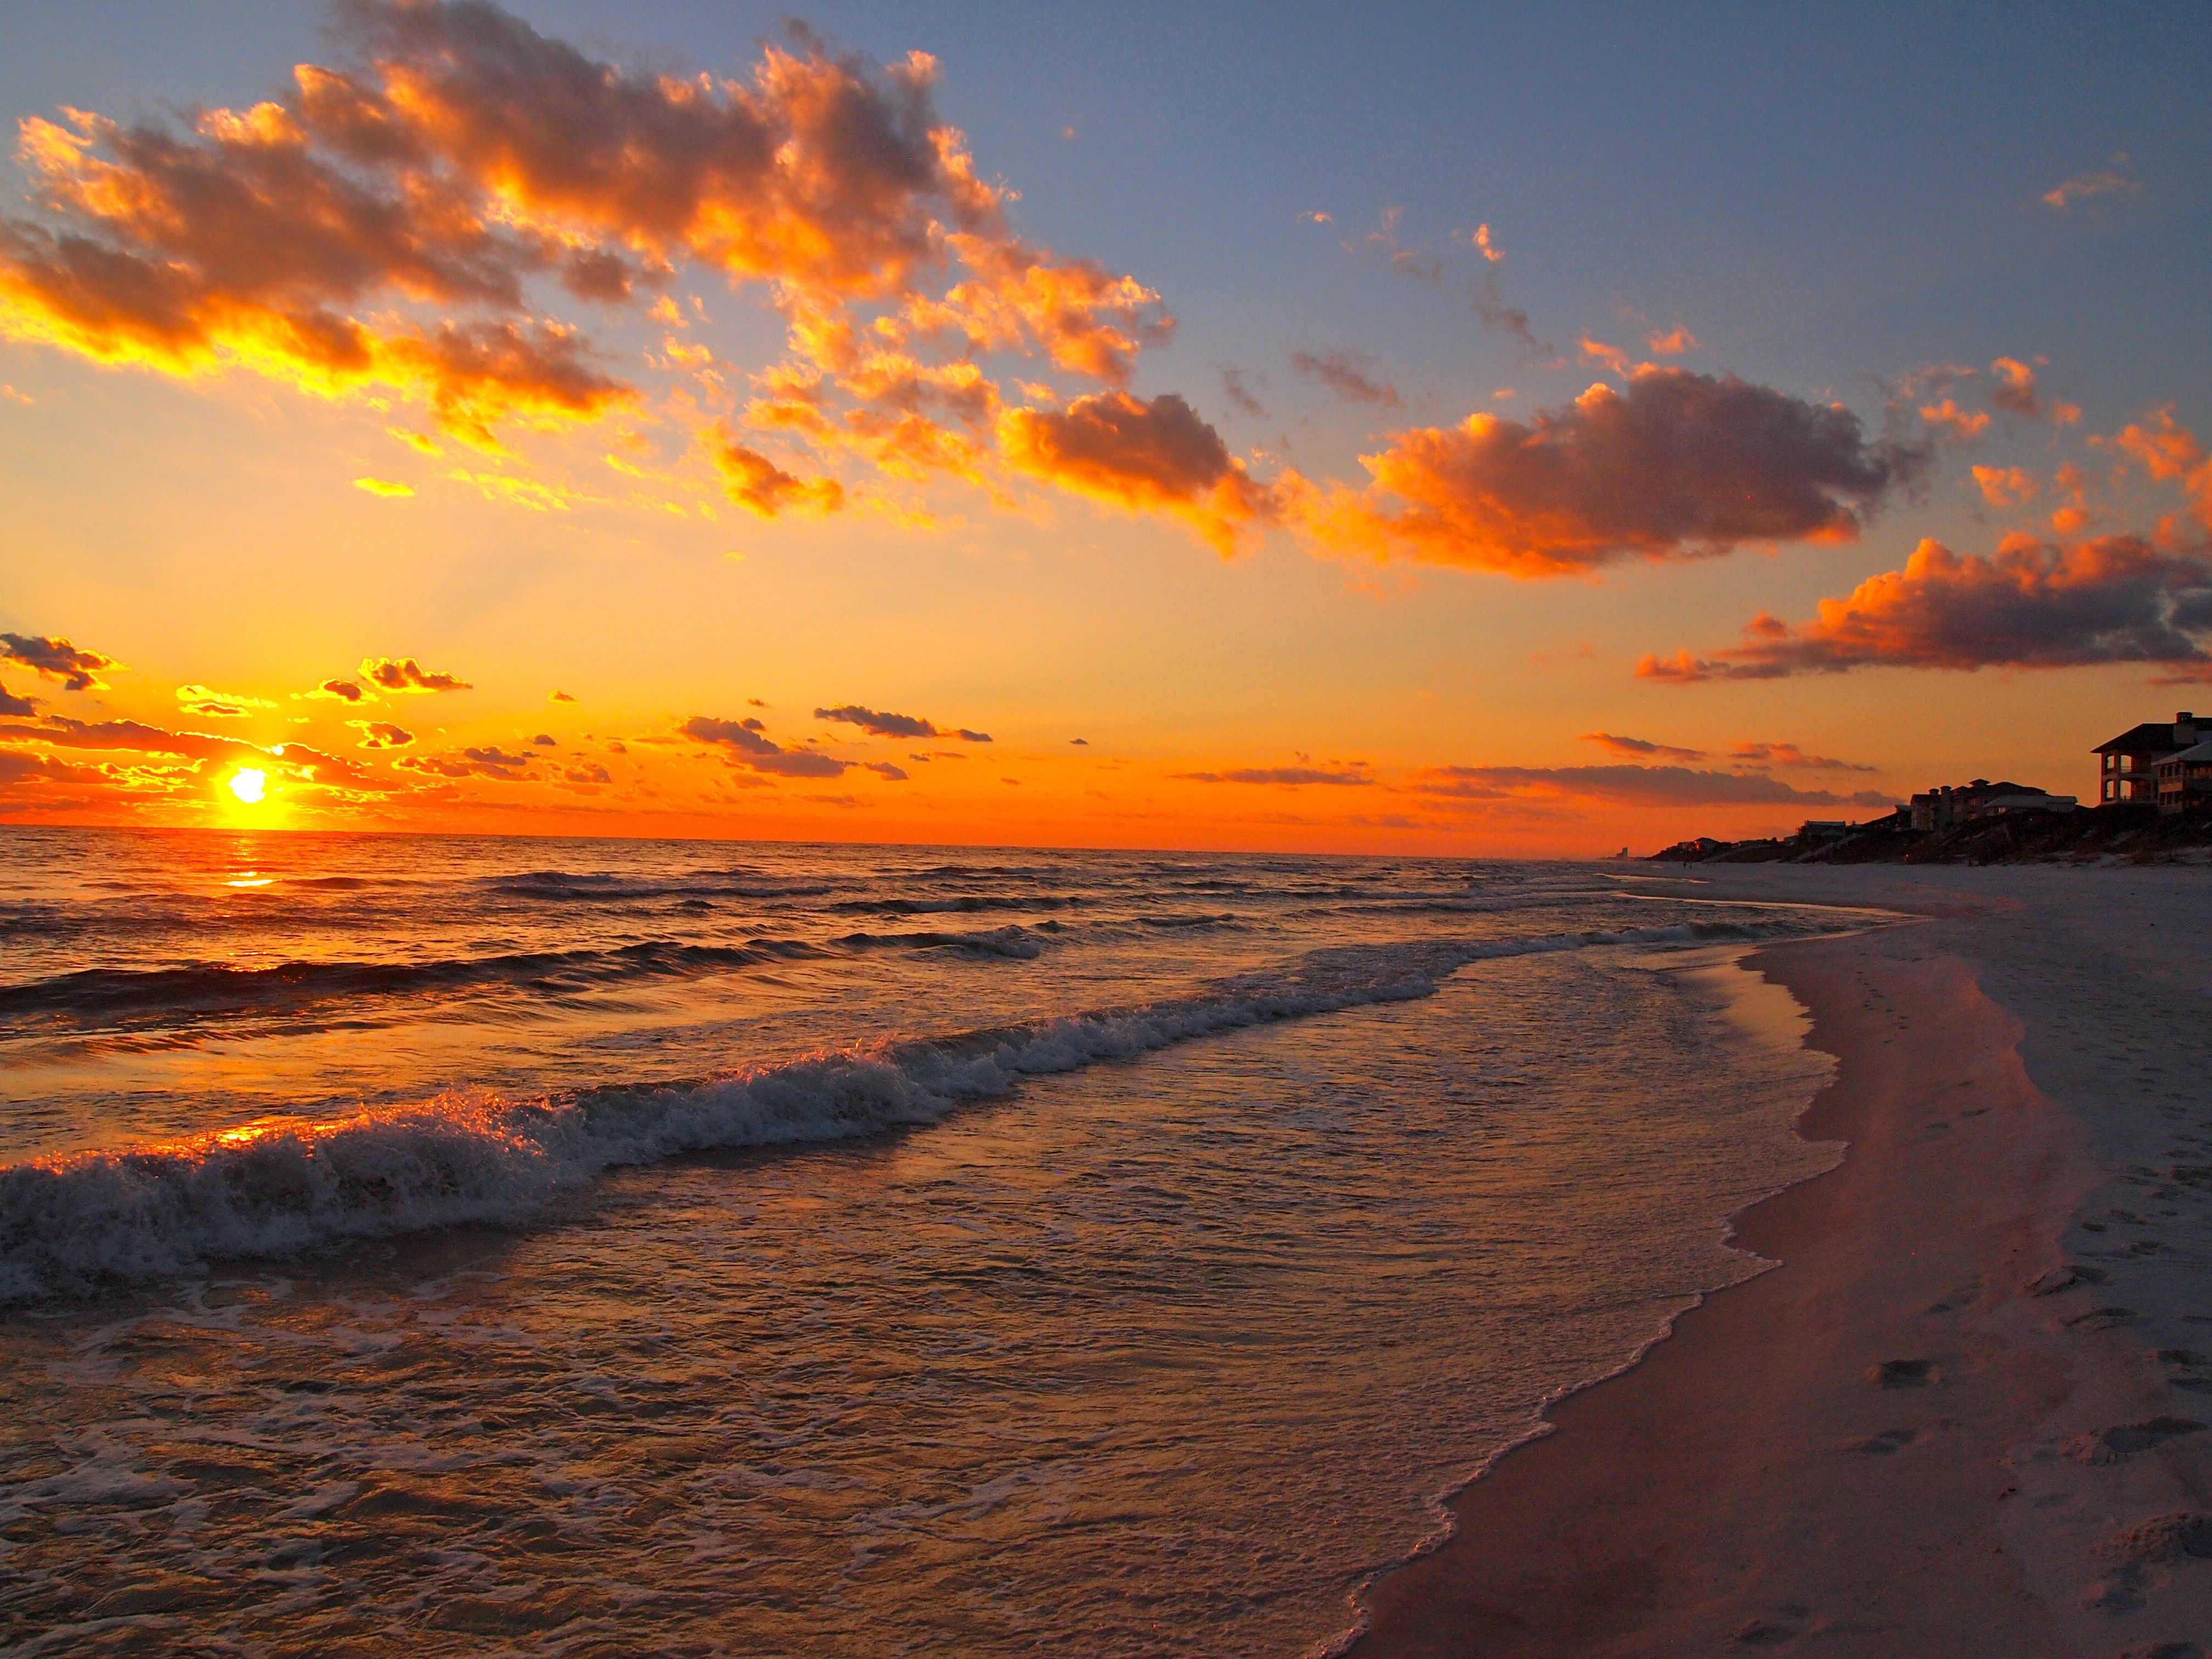 Aesthetic Beach Sunset Wallpapers - Wallpaper Cave